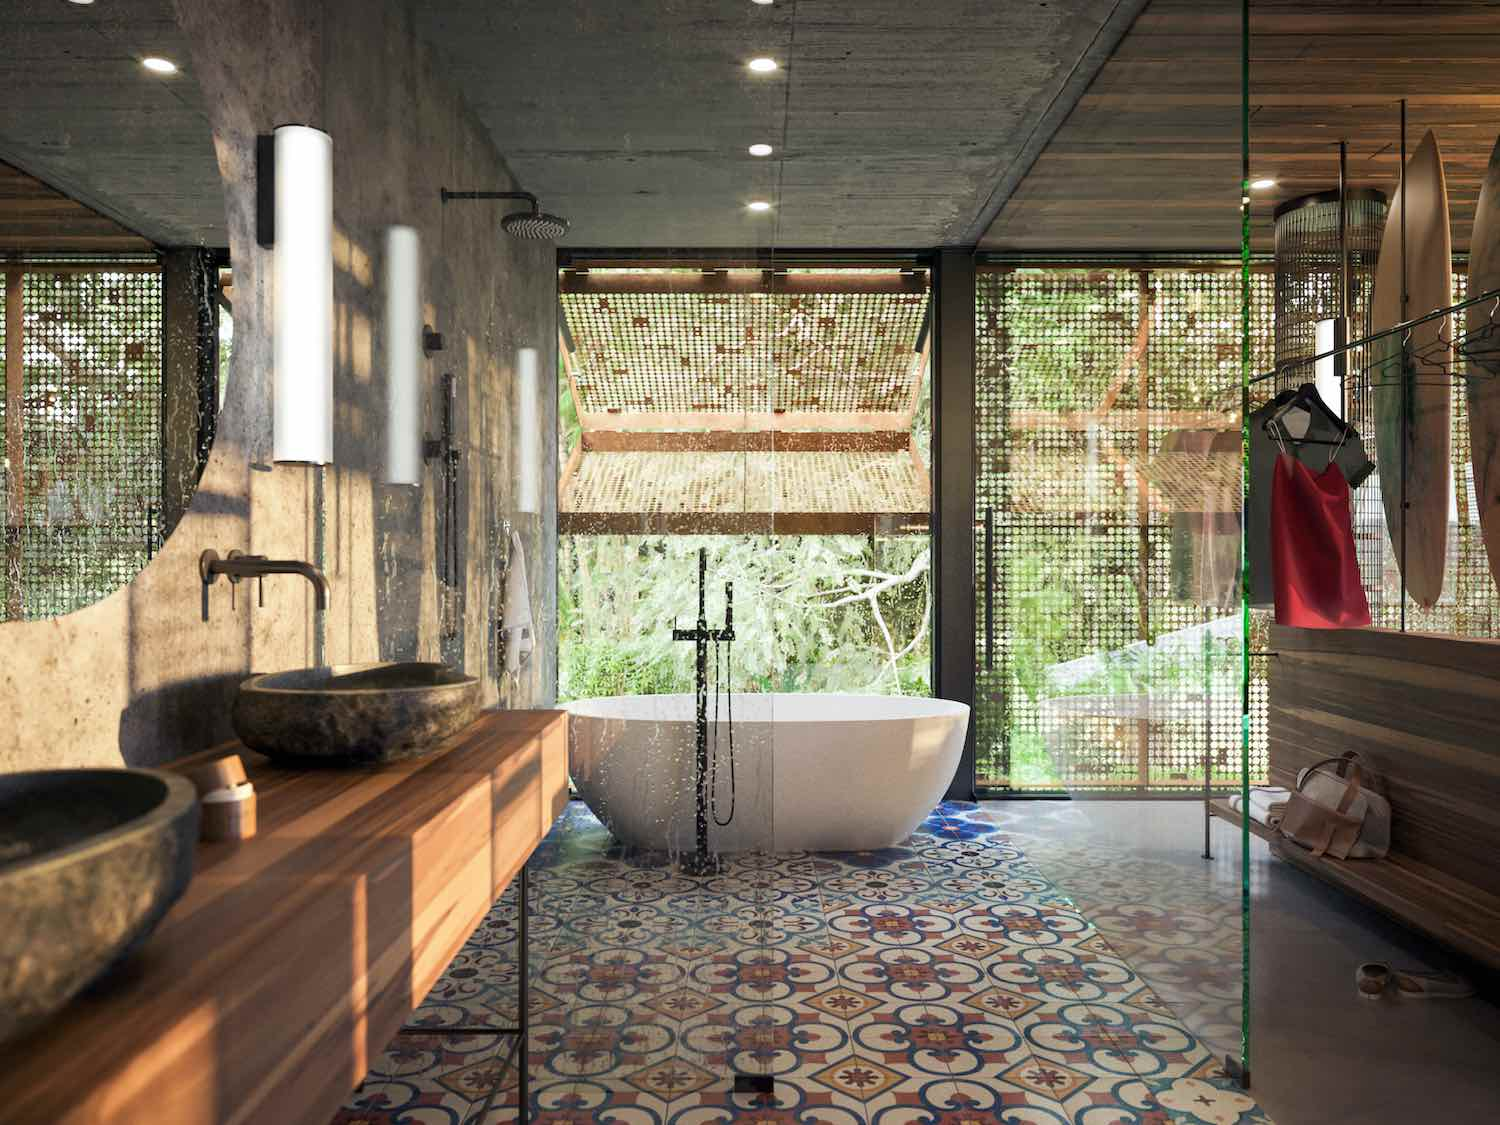 a bathroom with colored tiles